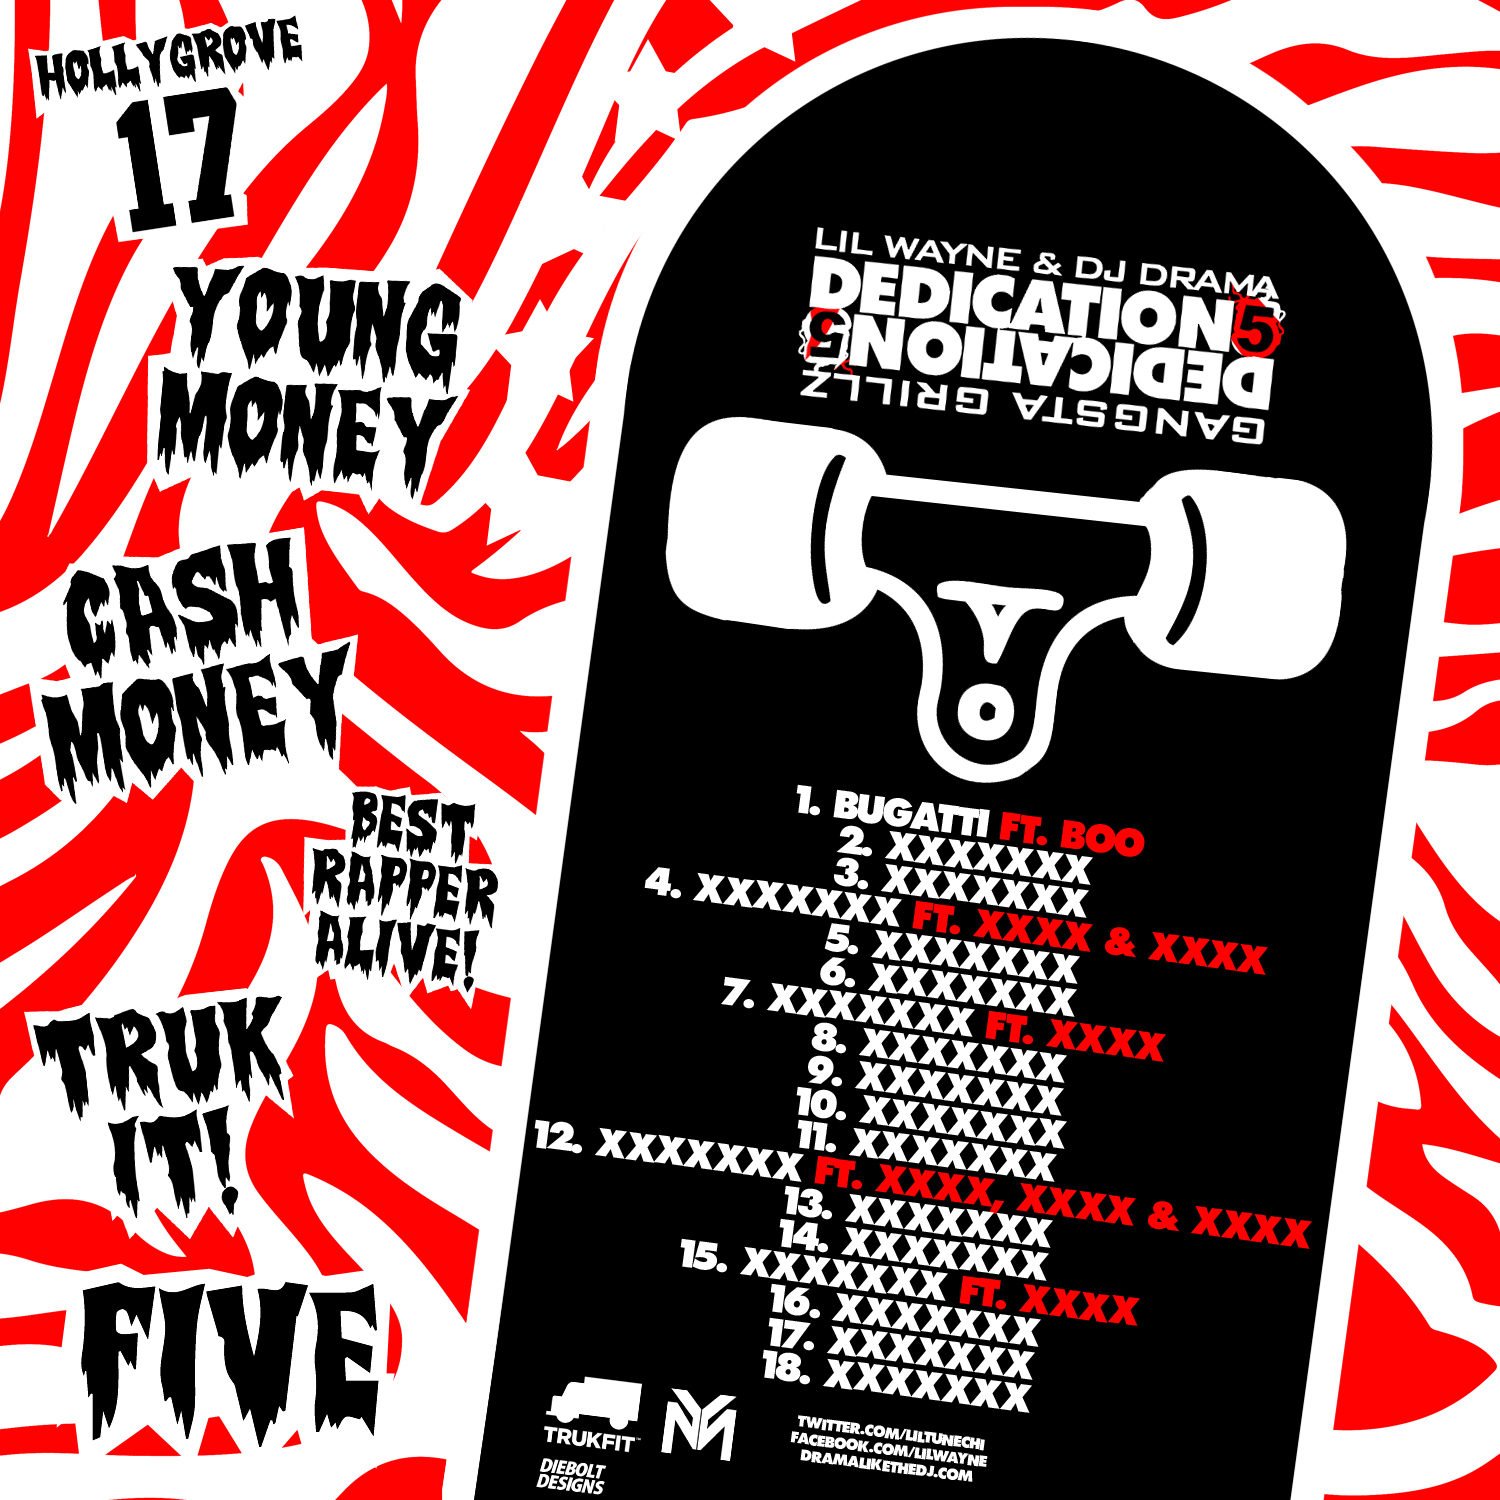 Related Keywords & Suggestions for dedication 5 tracklist